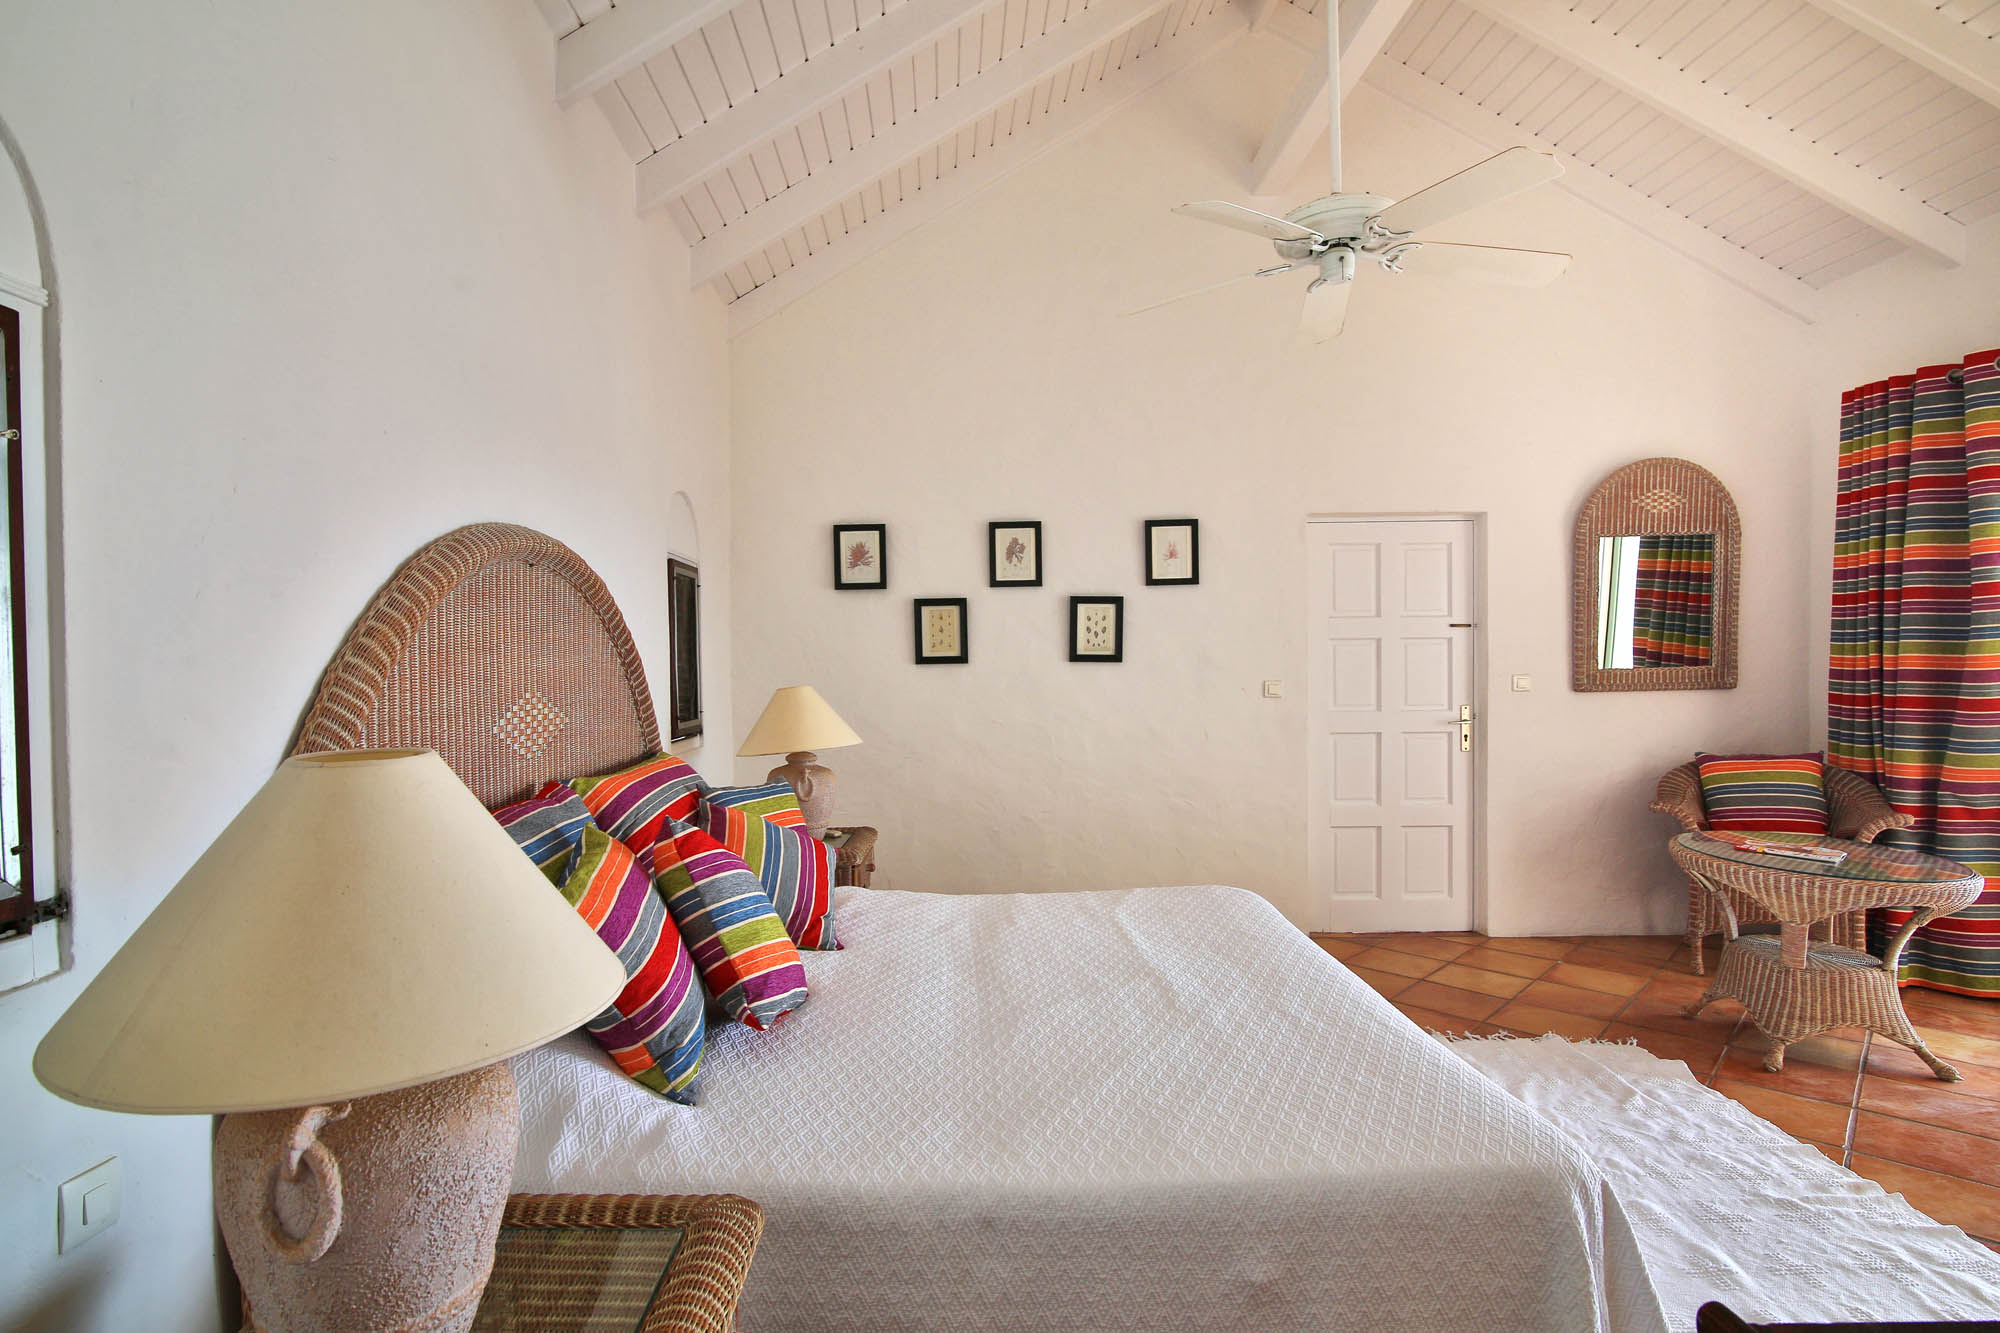 Each bedroom at this Saint Martin holiday rental has a very large private bathroom, air conditioning and ceiling fans.